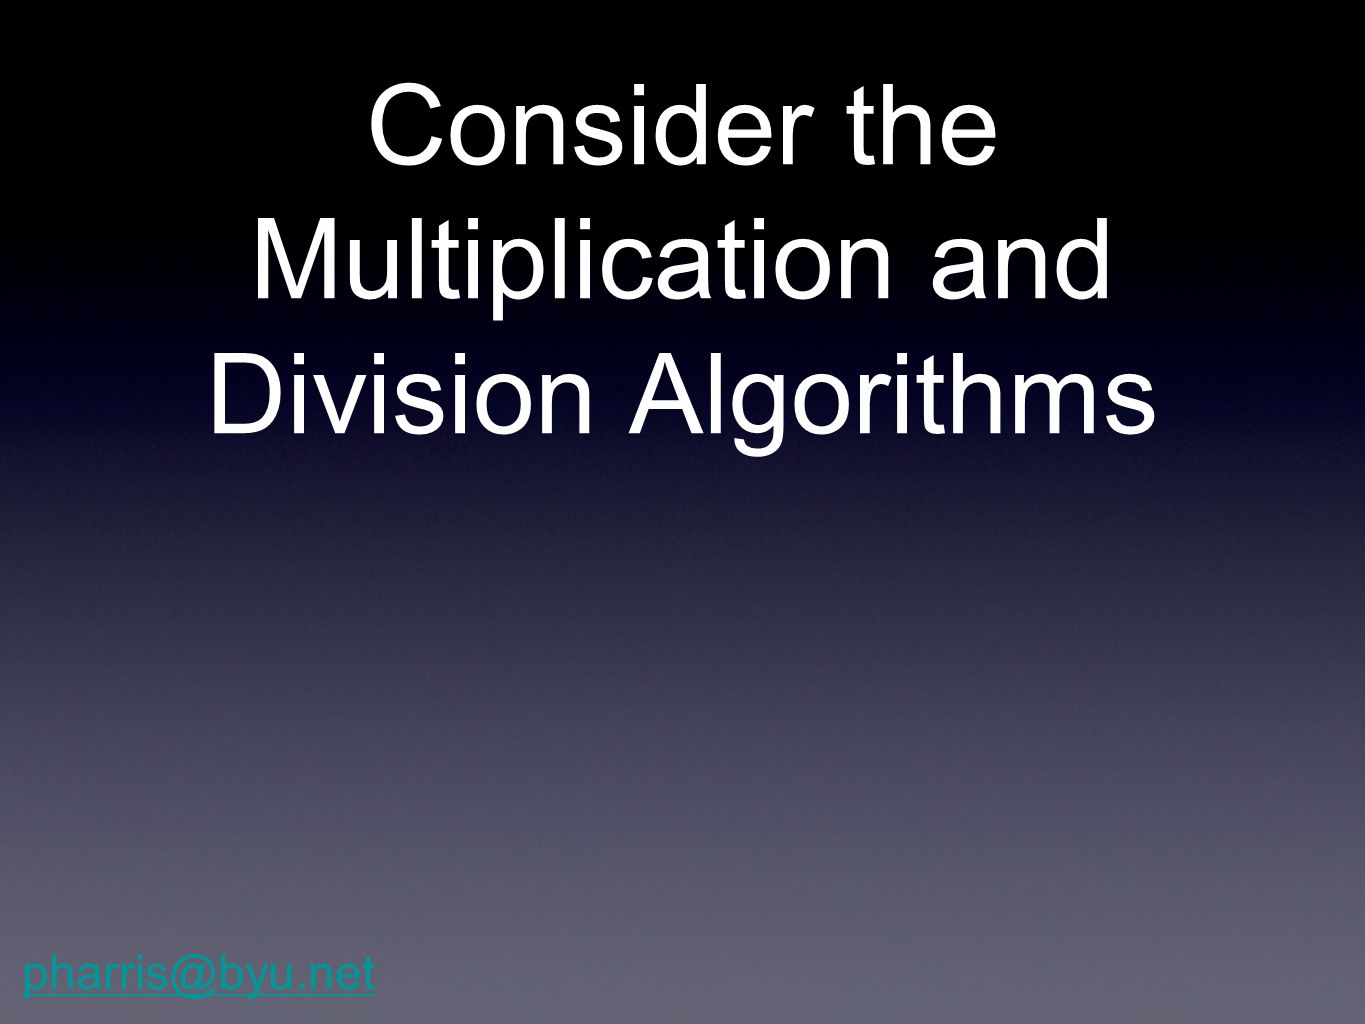 Consider the Multiplication and Division Algorithms pharris@byu.net